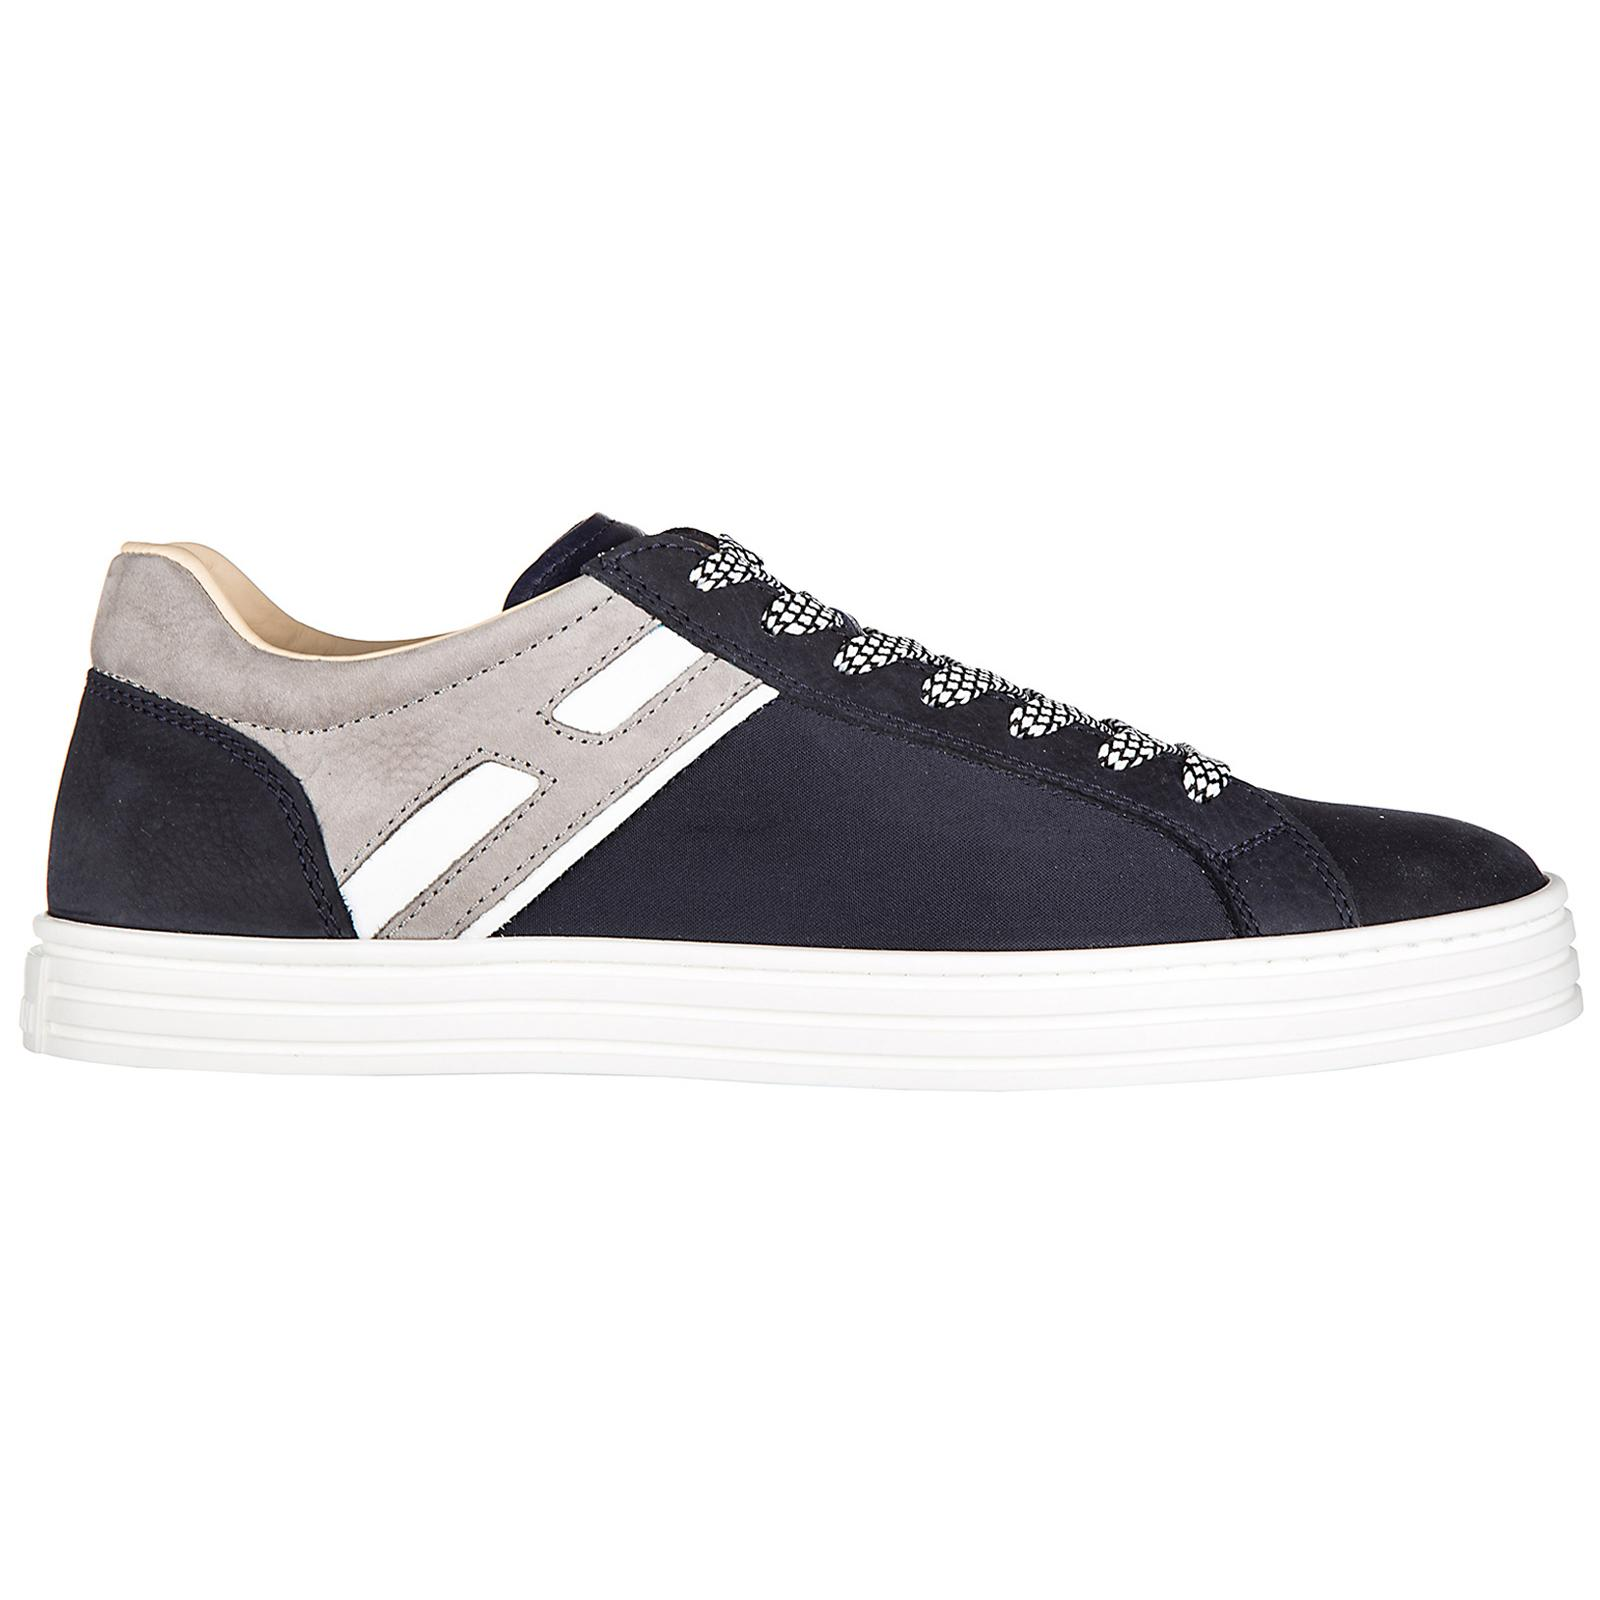 Hogan Rebel Men's Shoes Suede Trainers Sneakers R141 Basso H Ombra ...